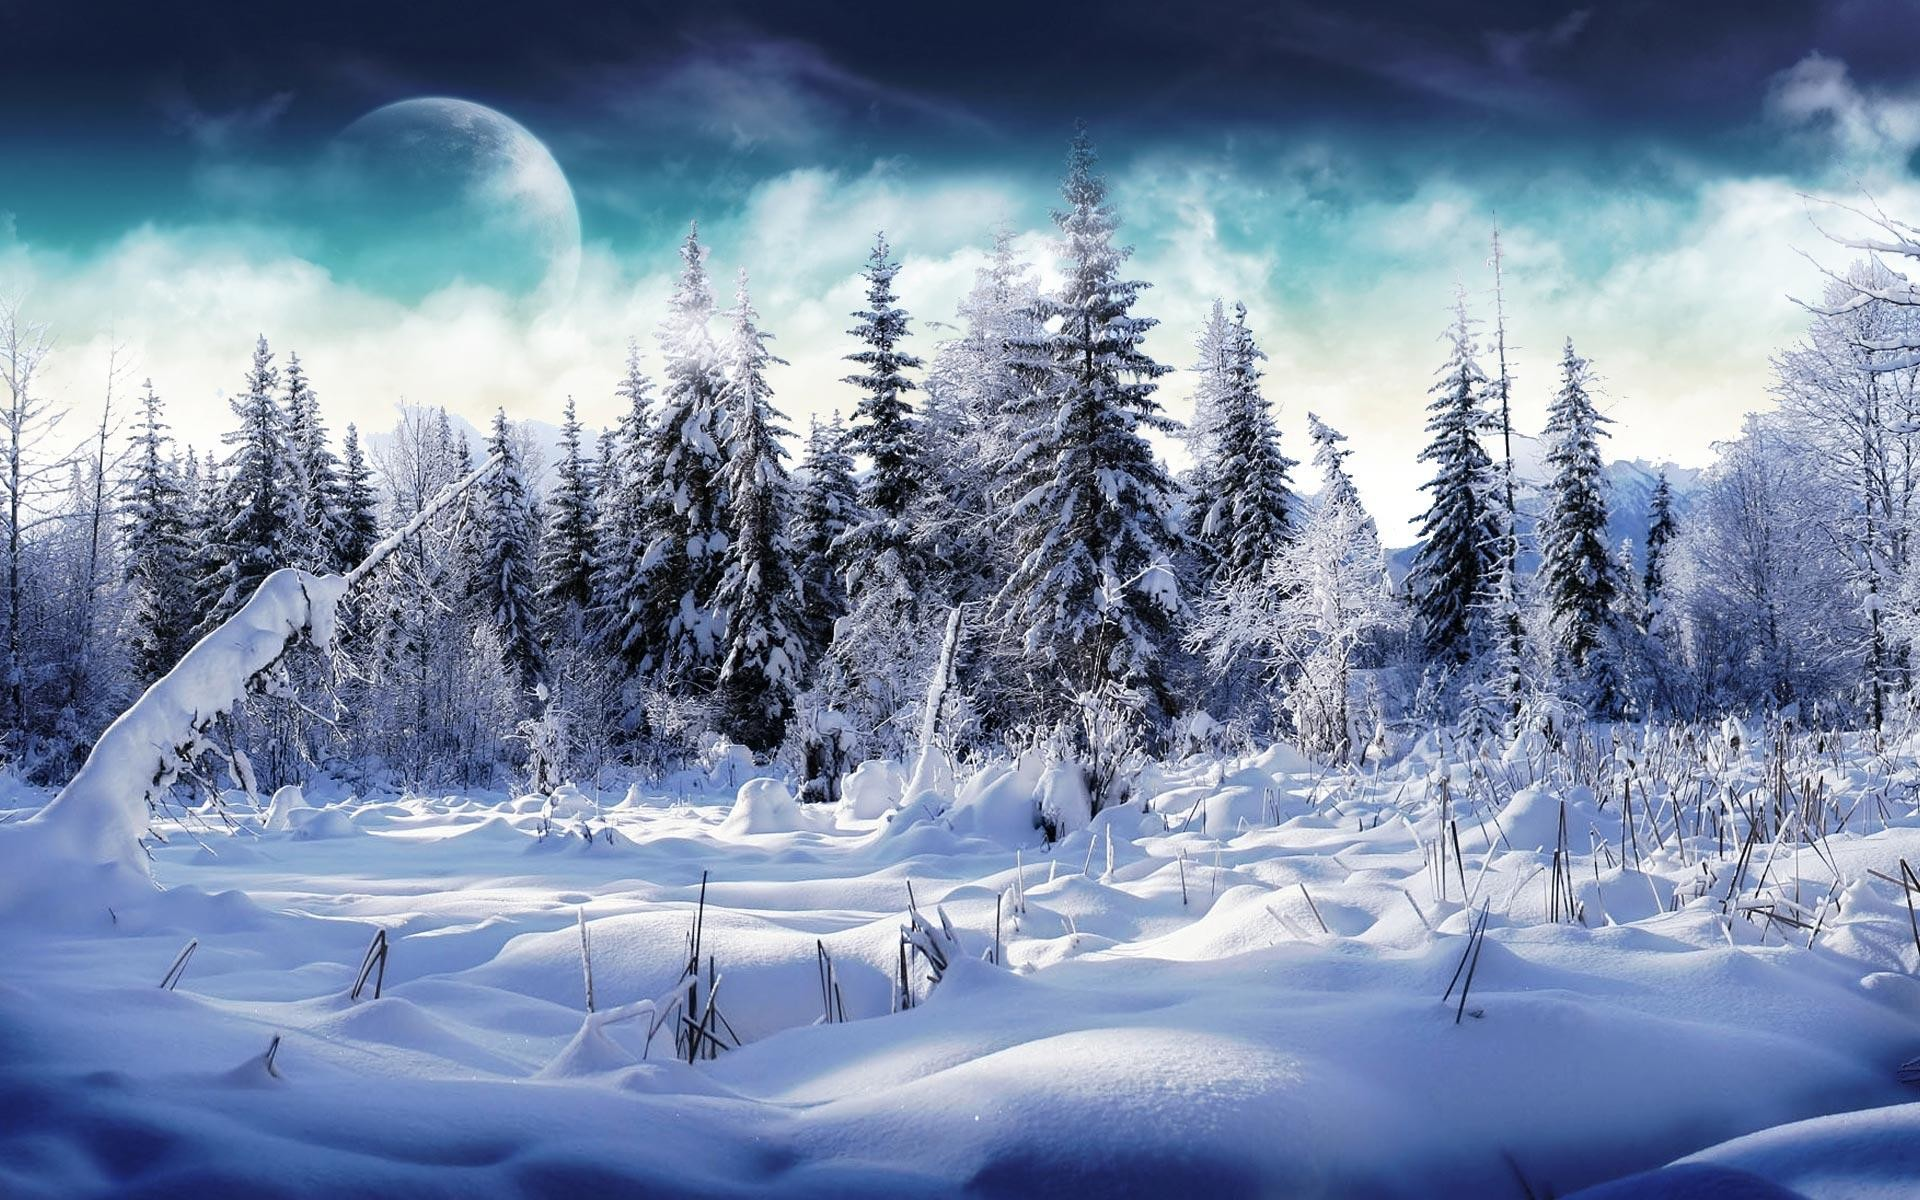 1920x1200 Winter Forest HD Wallpaper | Winter Forest Photos | New Wallpapers